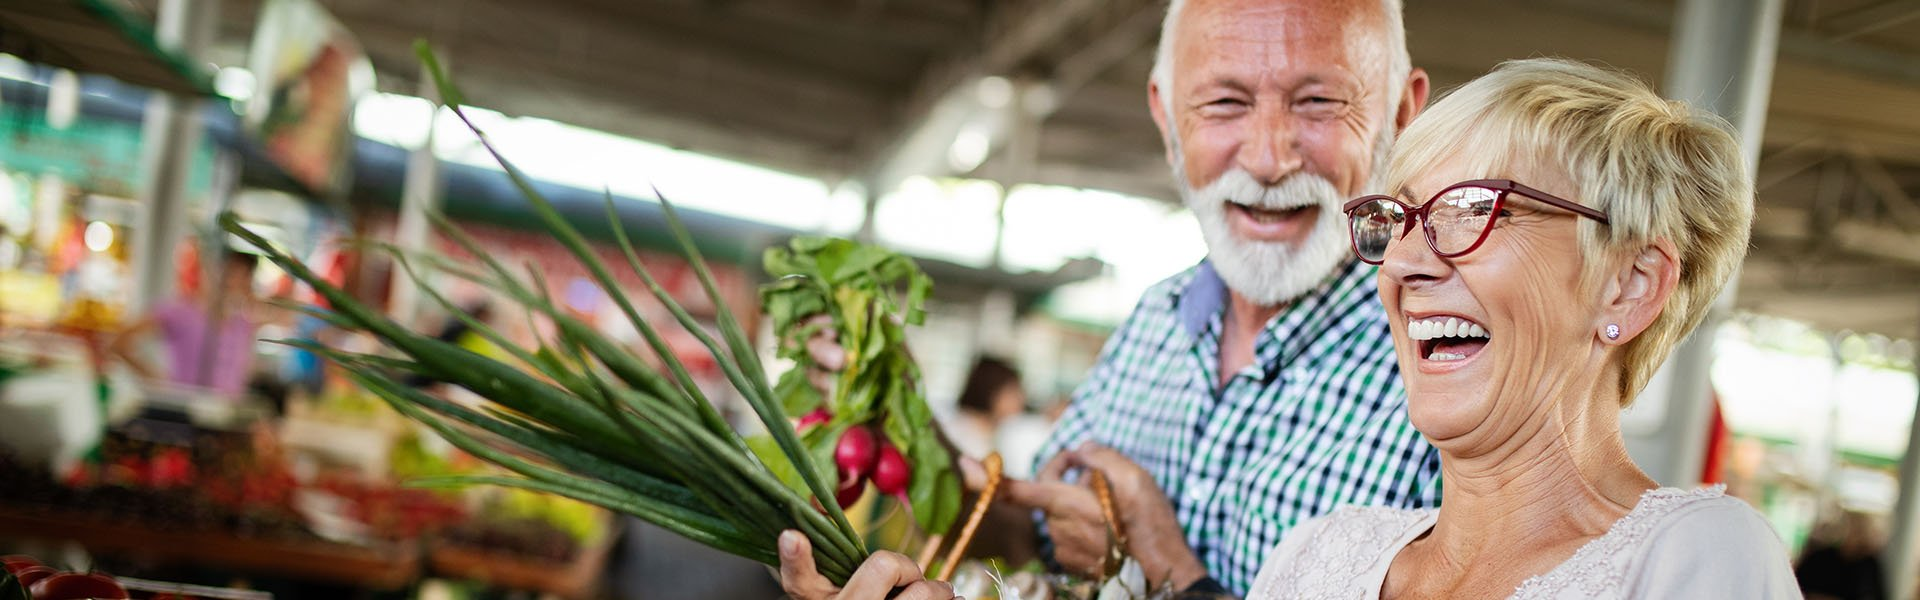 An older couple laughing while shopping at a farmer's market.